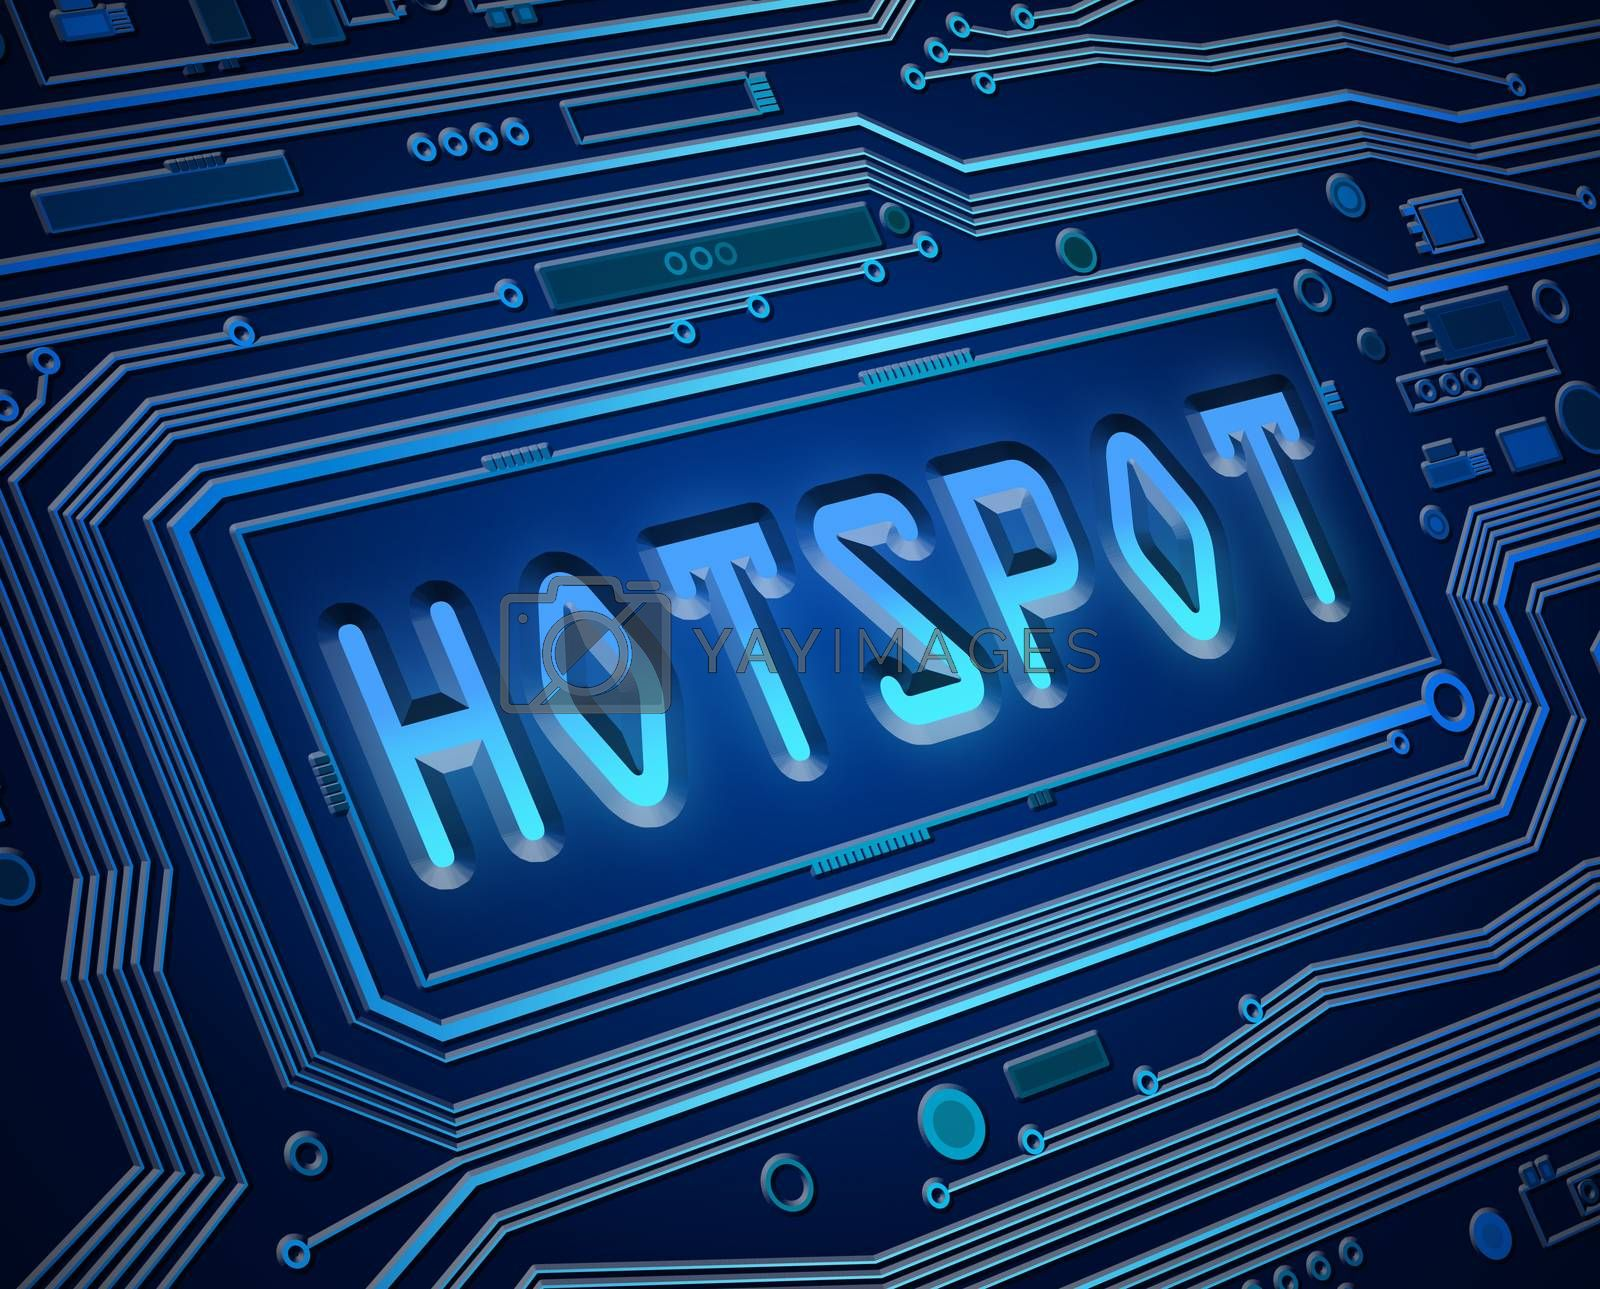 Abstract style illustration depicting printed circuit board components with a hotspot concept.